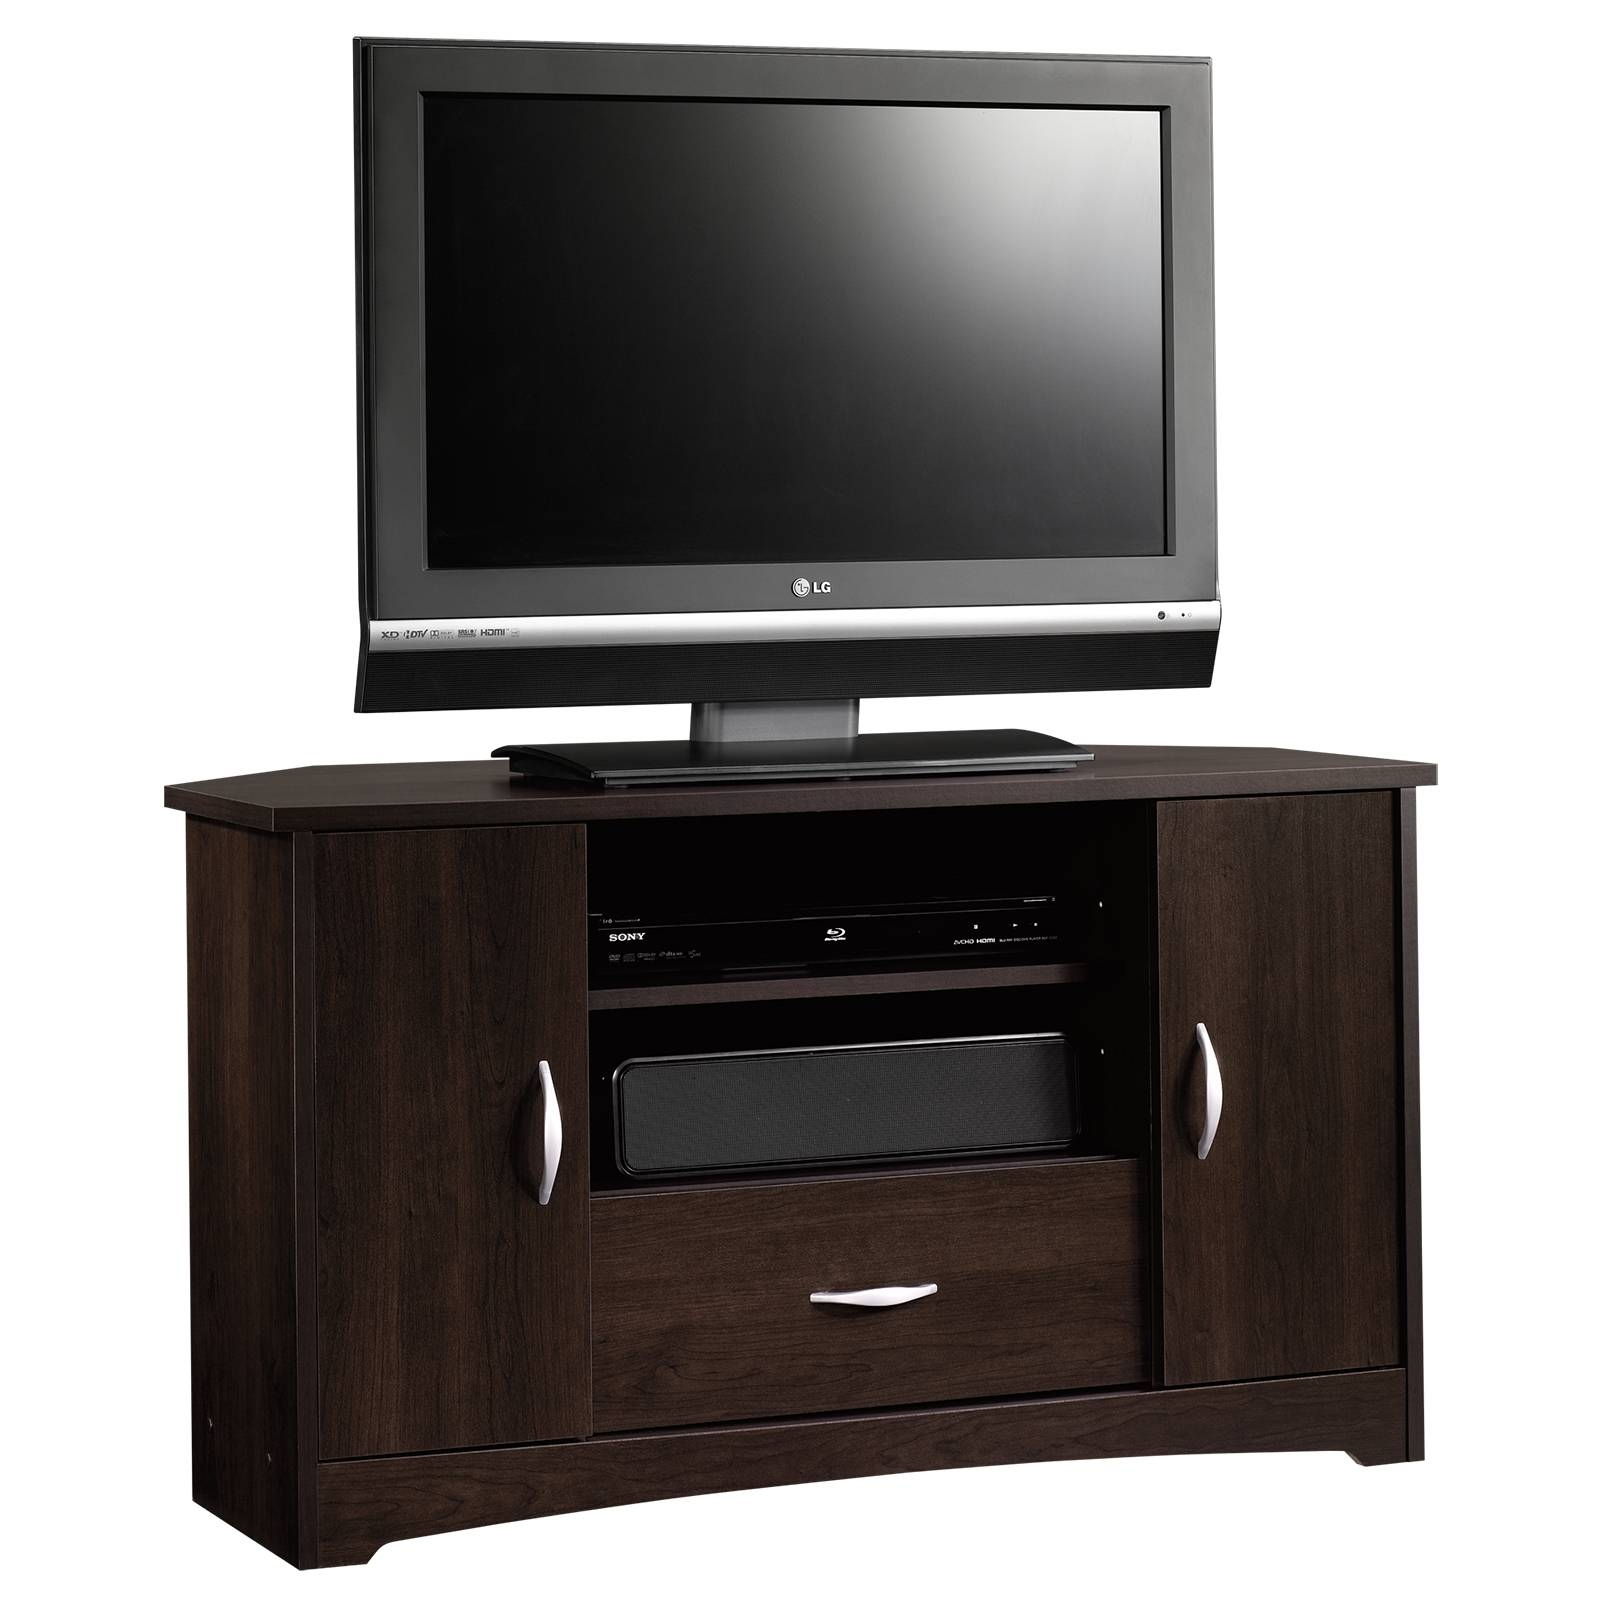 Tremendous Flat Screens New Teak Furnitures As Wells As Flat Within Corner Tv Stands With Drawers (View 8 of 15)